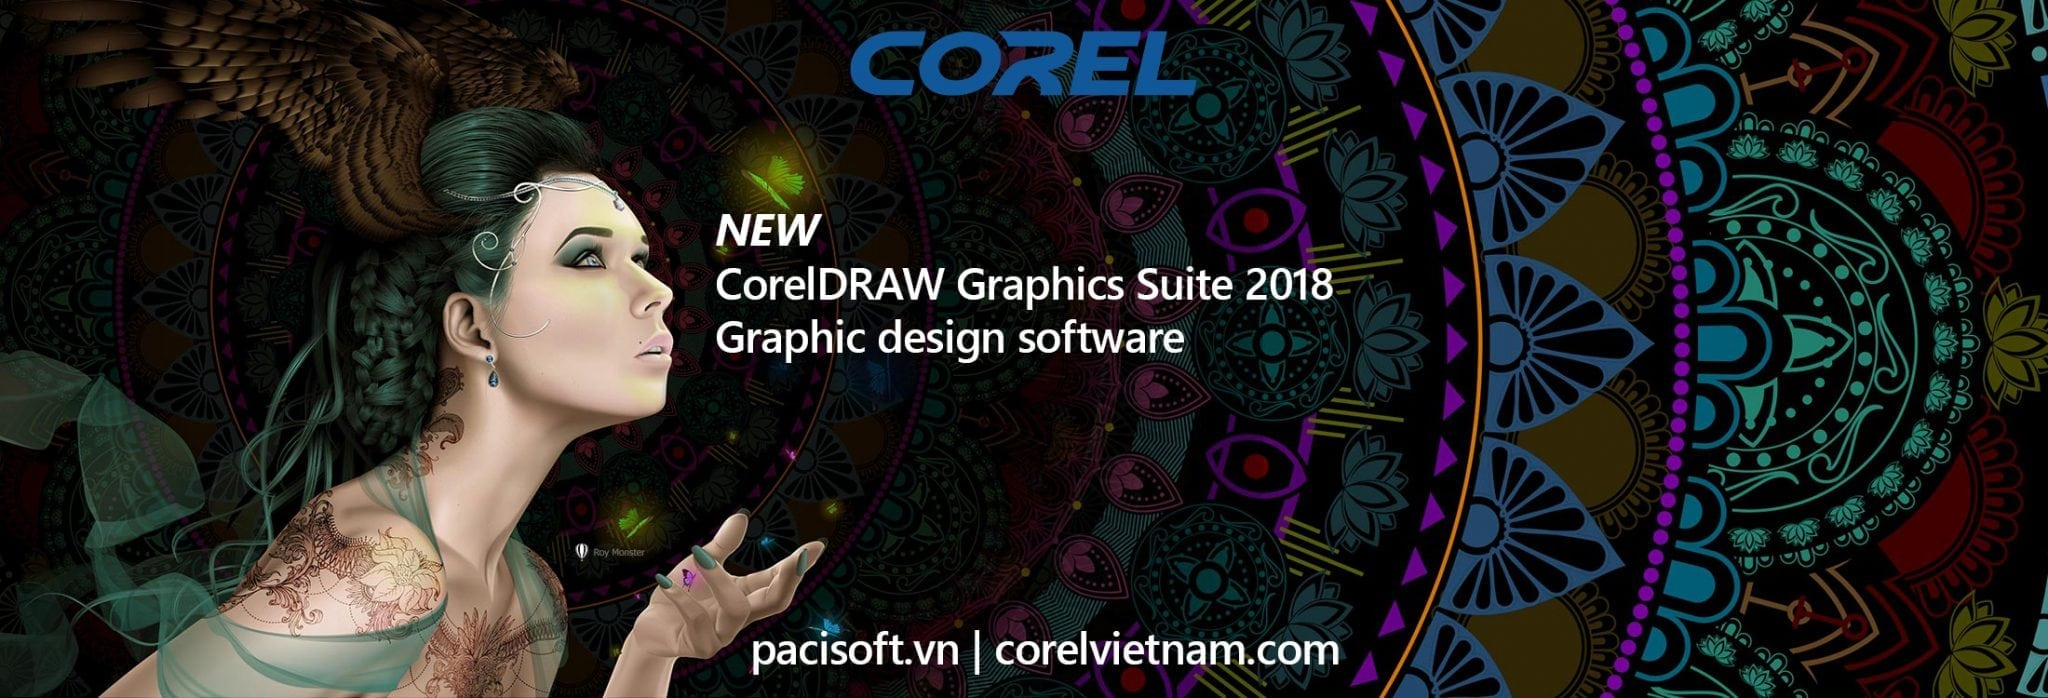 mua CorelDRAW Graphics Suite 2018